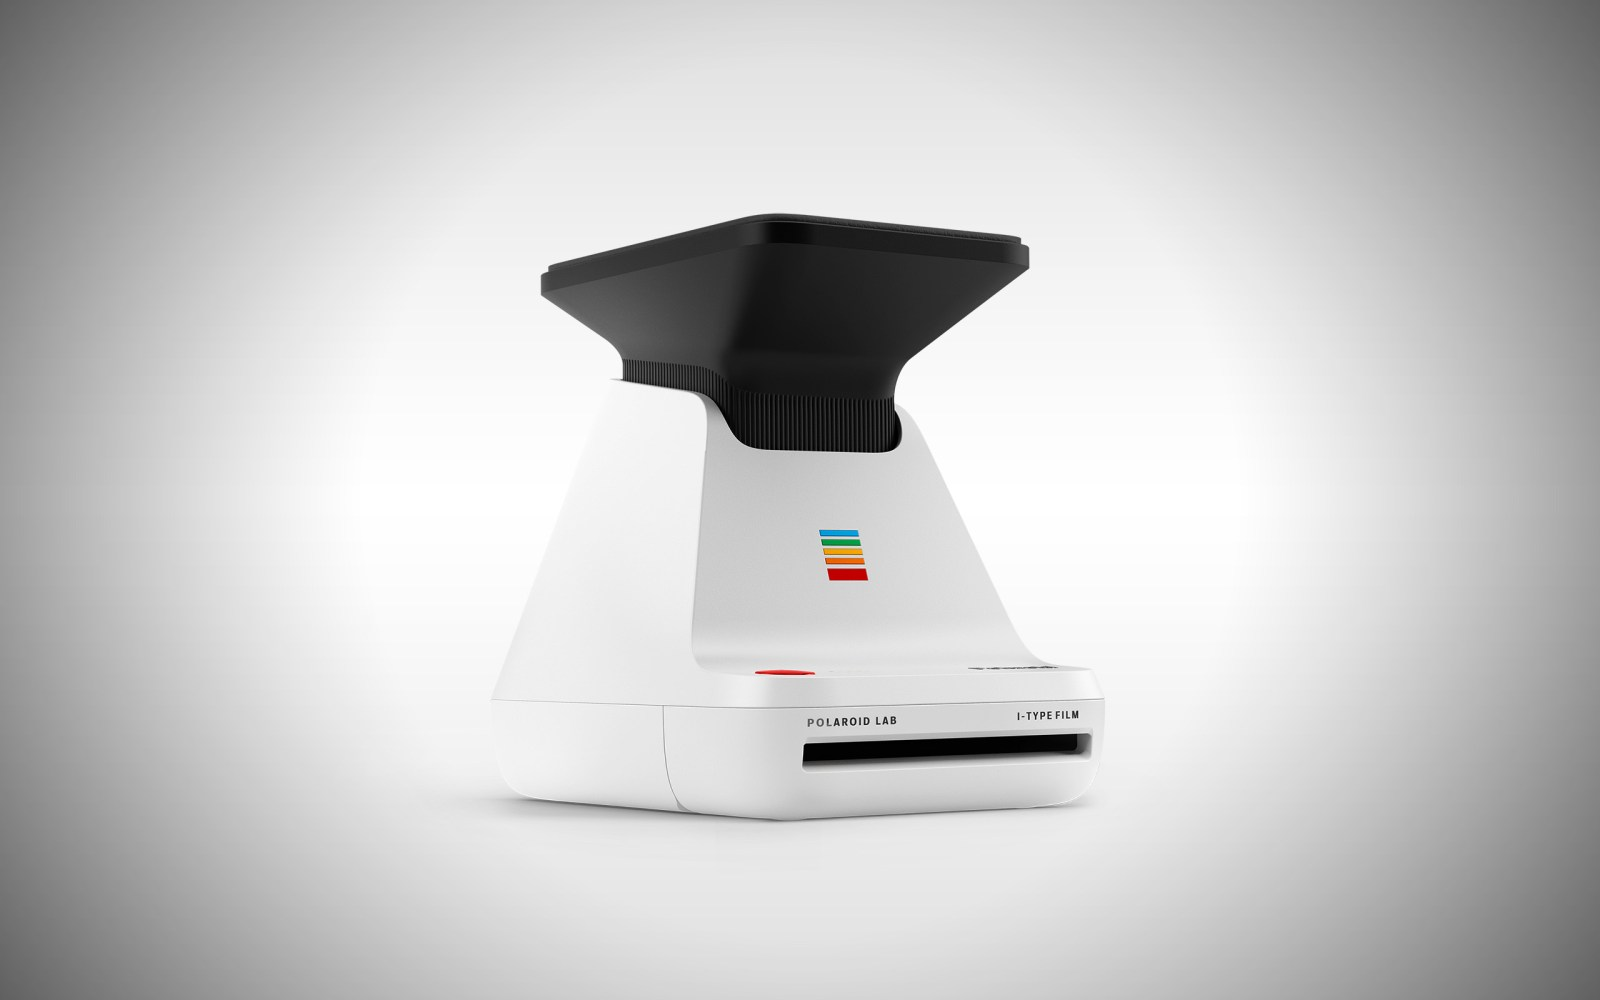 Develop your smartphone's photos with Polaroid Lab Instant Printer